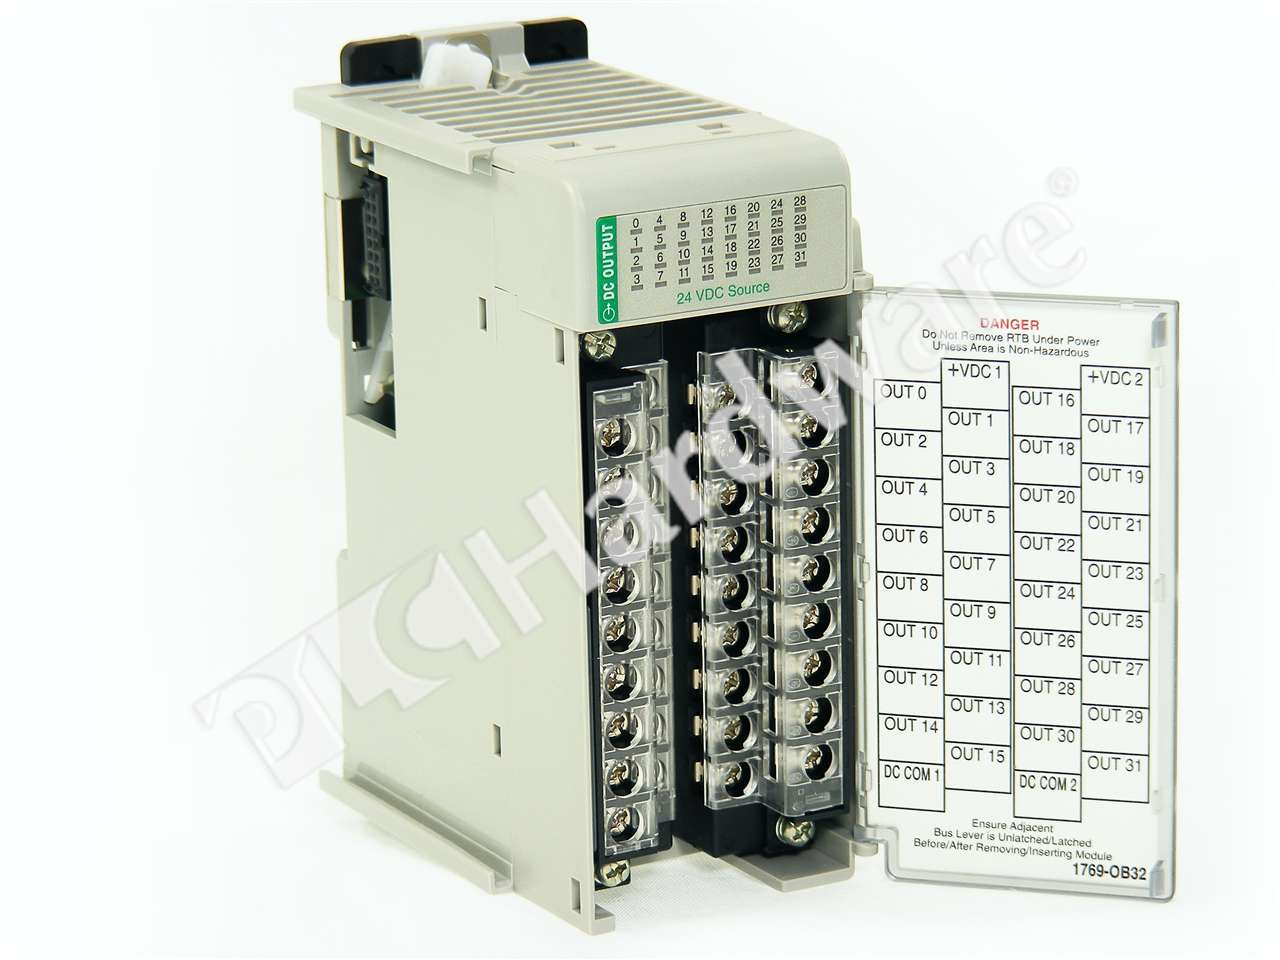 RA 1769 ob32 a NSO_3_10_06_08_22_09_b plc hardware allen bradley 1769 ob32 series a, used in a plch 1769-ob32 wiring diagram at crackthecode.co